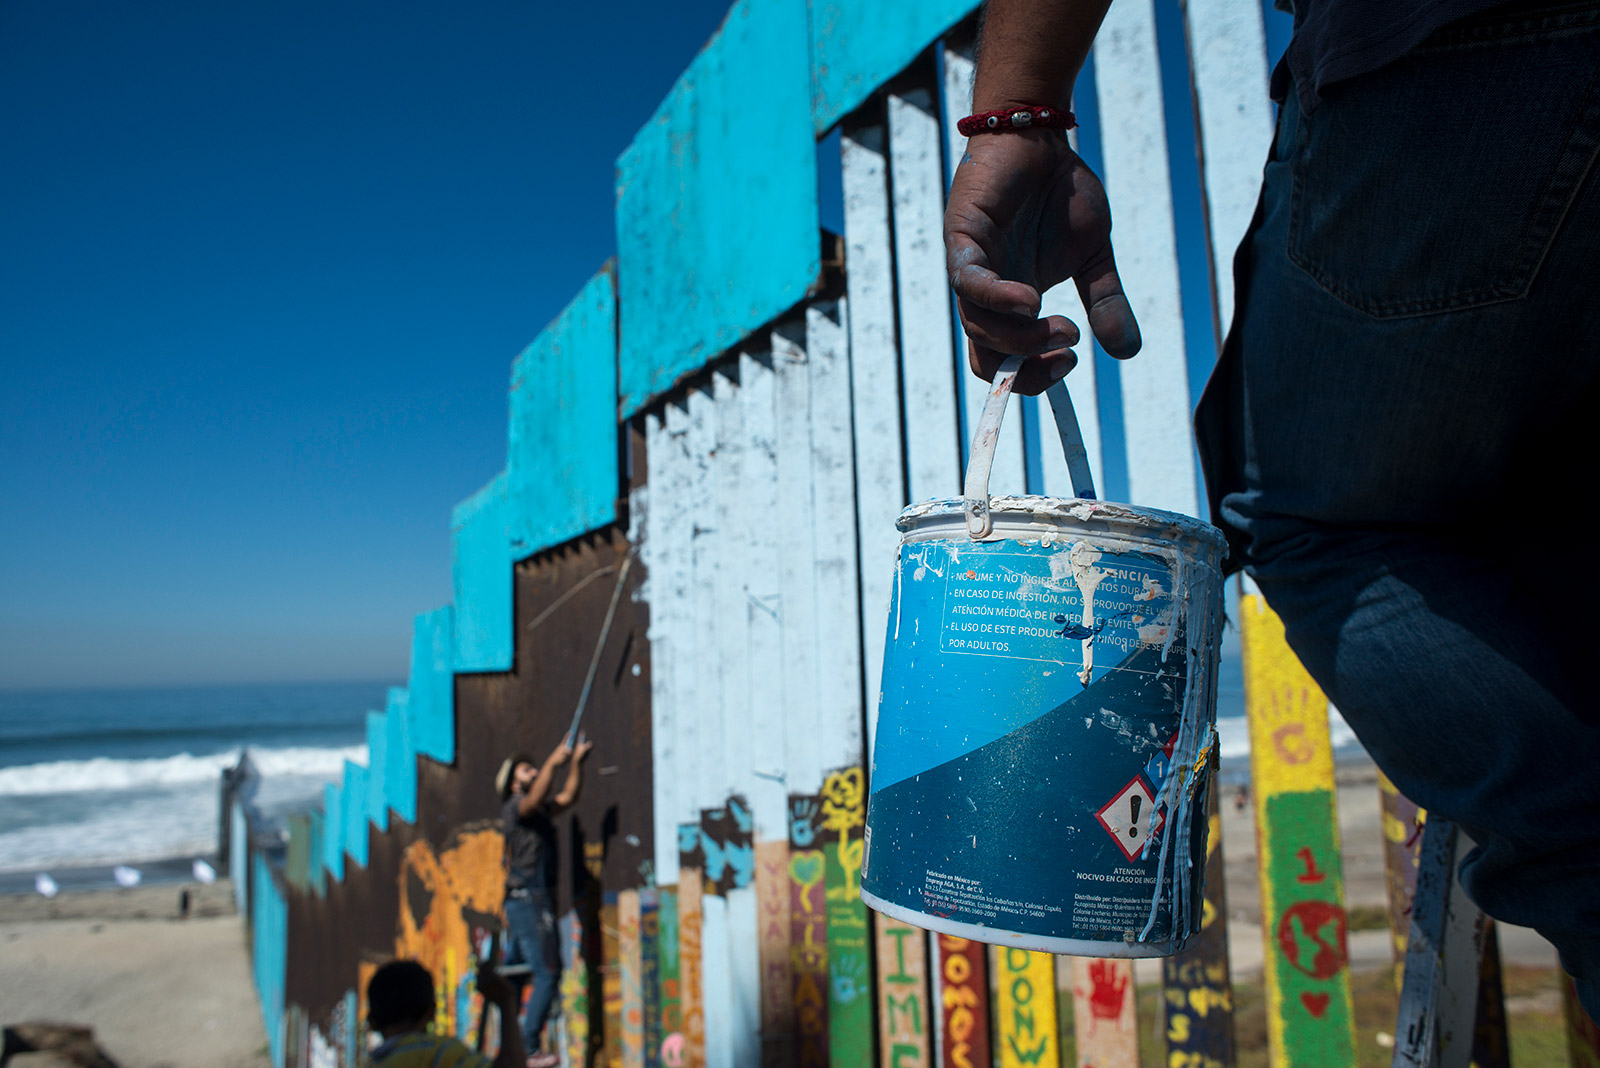 Enrique Chiu carries a can of blue paint up a ladder that leans against the U.S.-Mexico border wall at Friendship Park in Tijuana on Oct. 7, 2017. Chiu and two volunteers spent the day painting the section of the fence that leads into the Pacific Ocean. <em>(Brandon Quester/inewsource)</em>